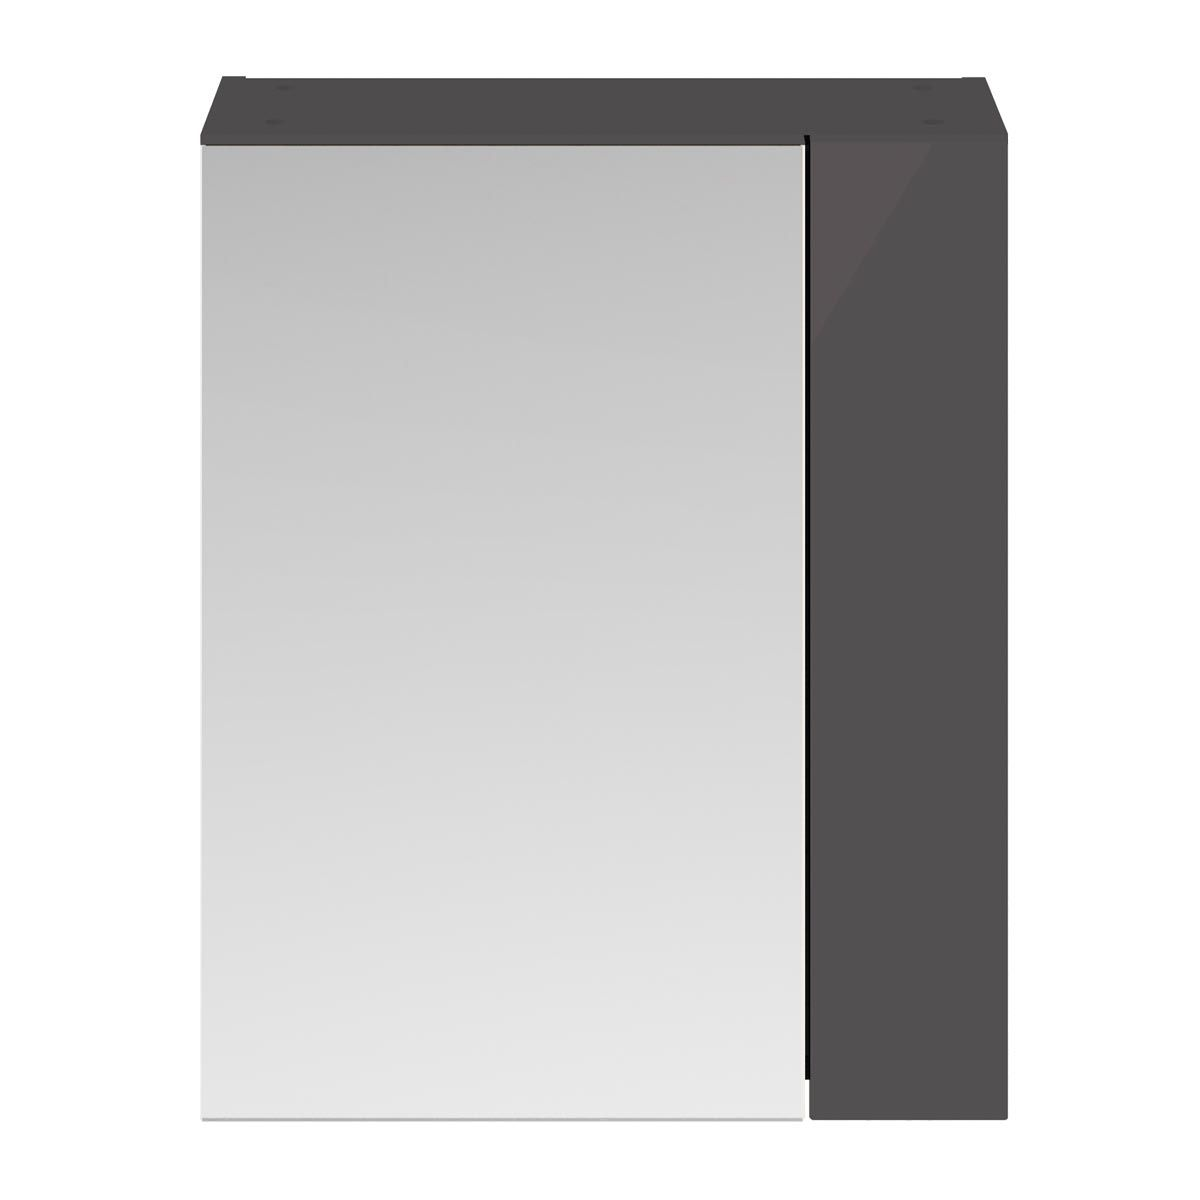 Nuie Athena Gloss Grey Double Mirrored Bathroom Cabinet 600mm